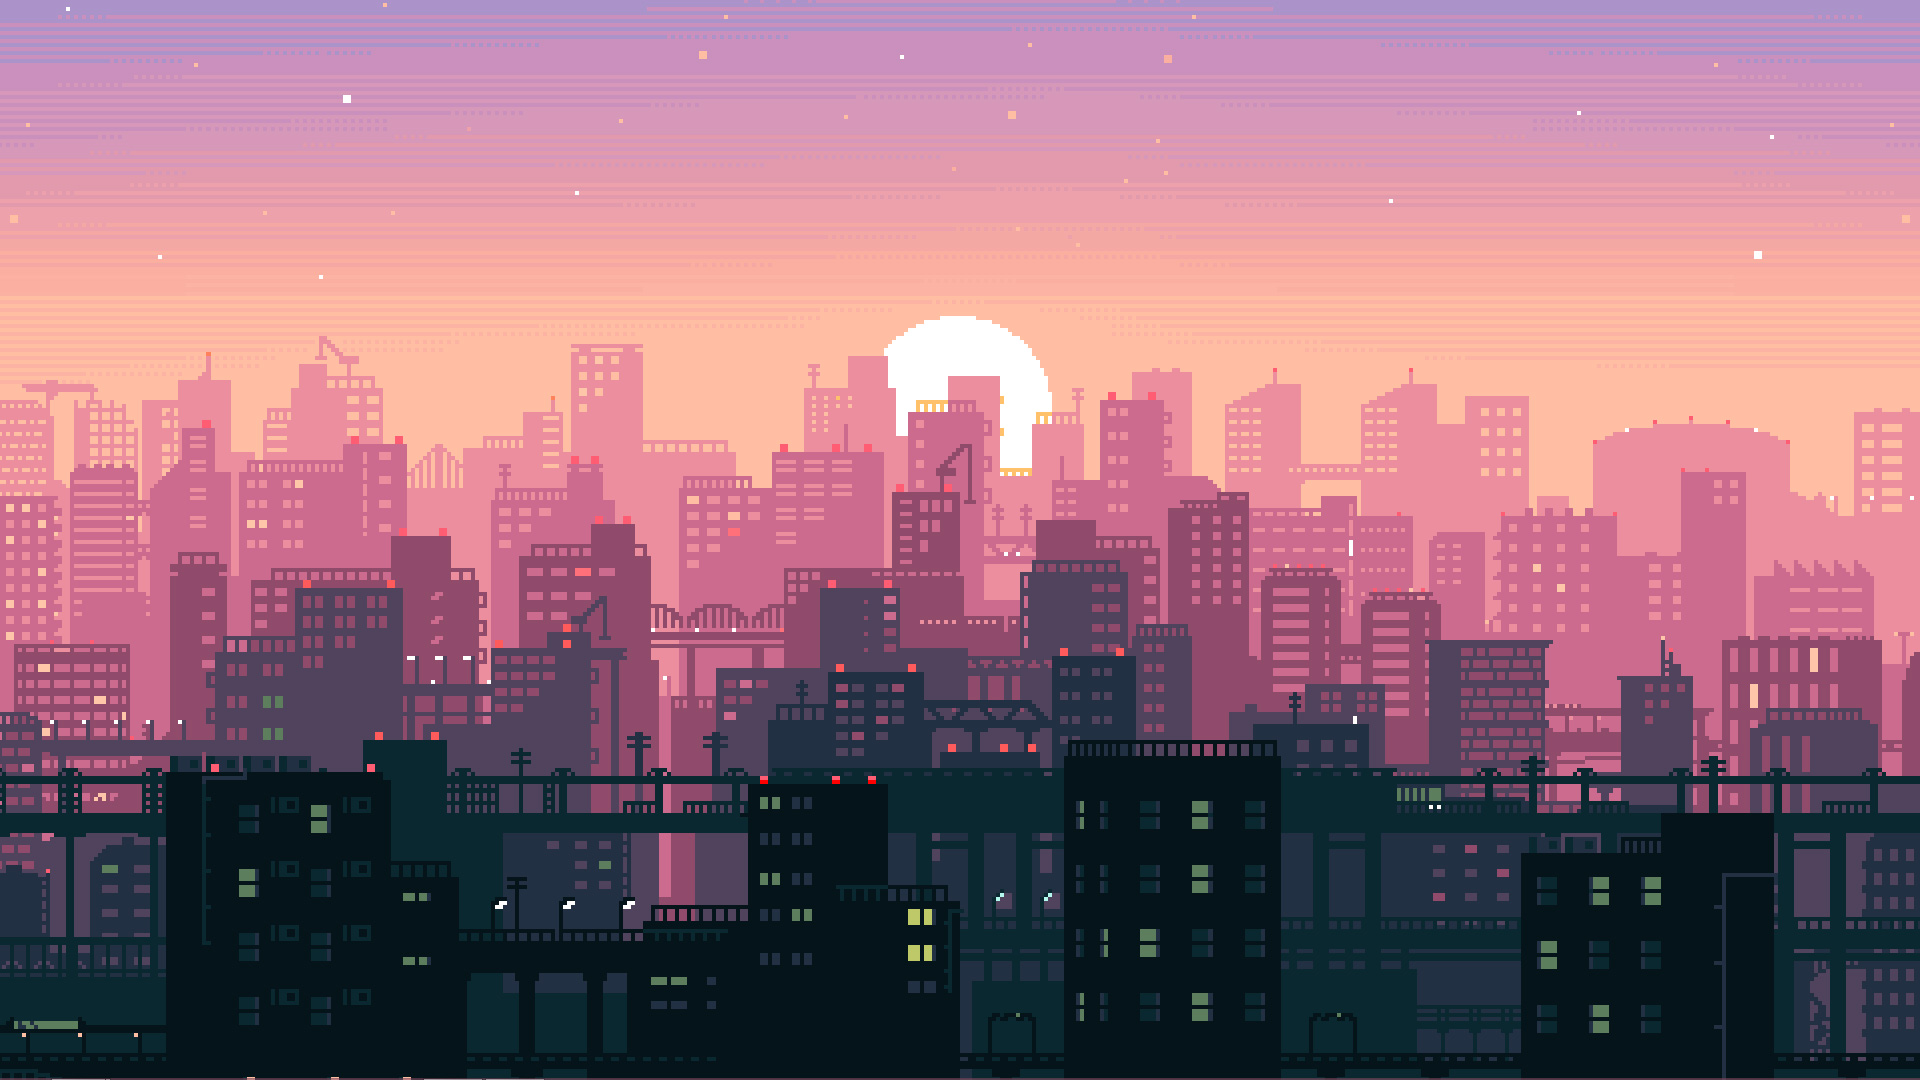 8 Bit Pixel Art City Hd Artist 4k Wallpapers Images Backgrounds